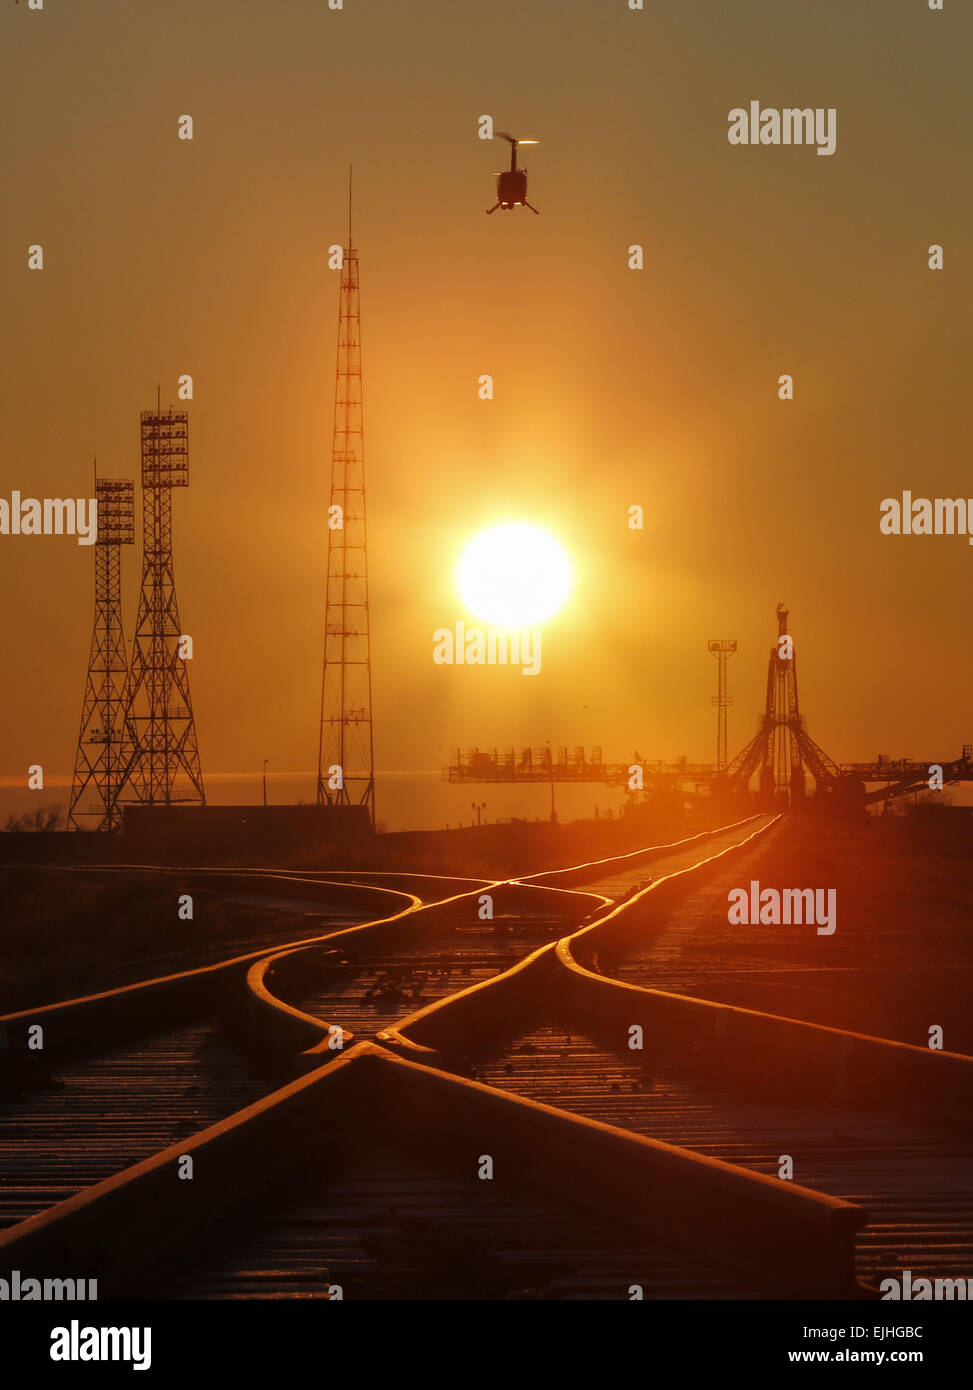 Baikonur, Kazakhstan. 25th Mar, 2015. A view of the Gagarin Start launch pad at the Baikonur Cosmodrome at sunrise. - Stock Image